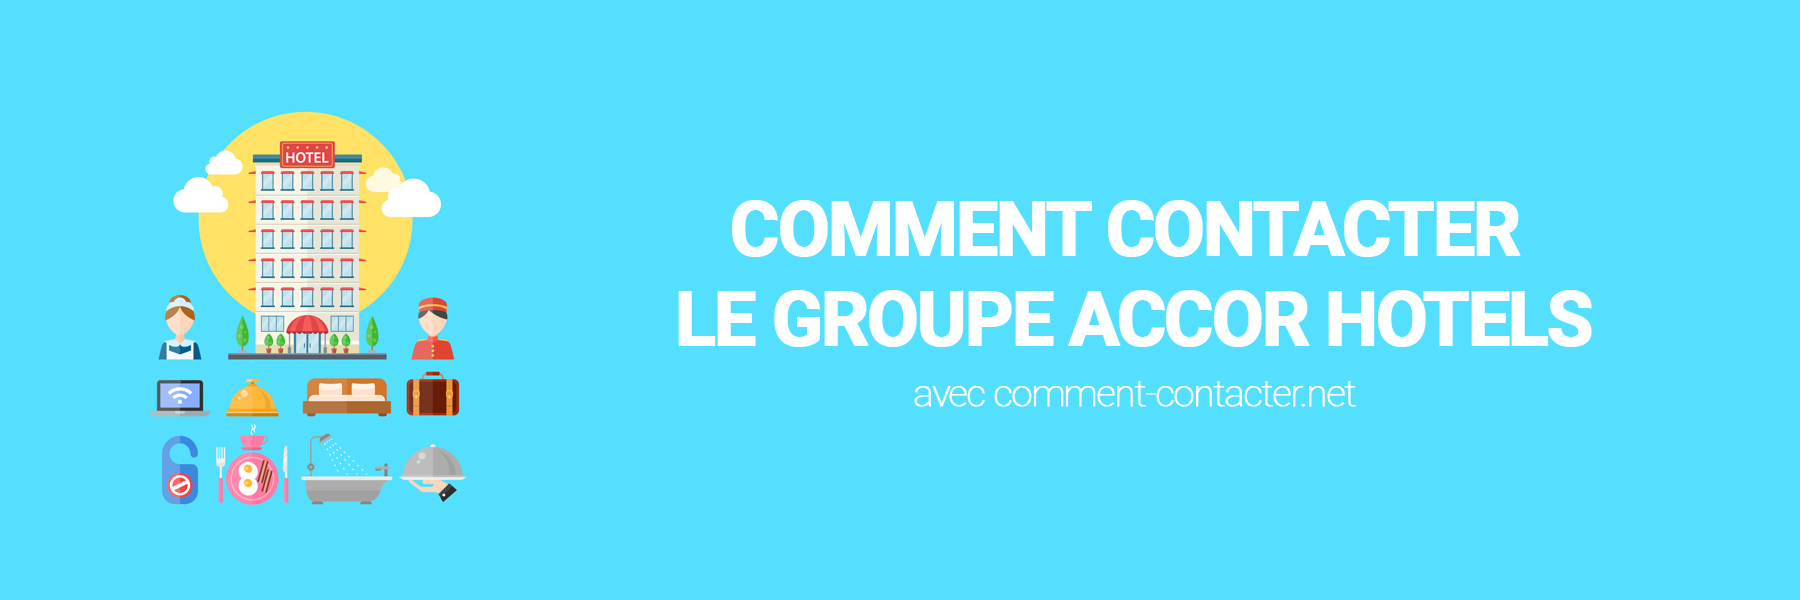 Comment contacter le groupe accor hotels comment contacter - Comment contacter l afub ...